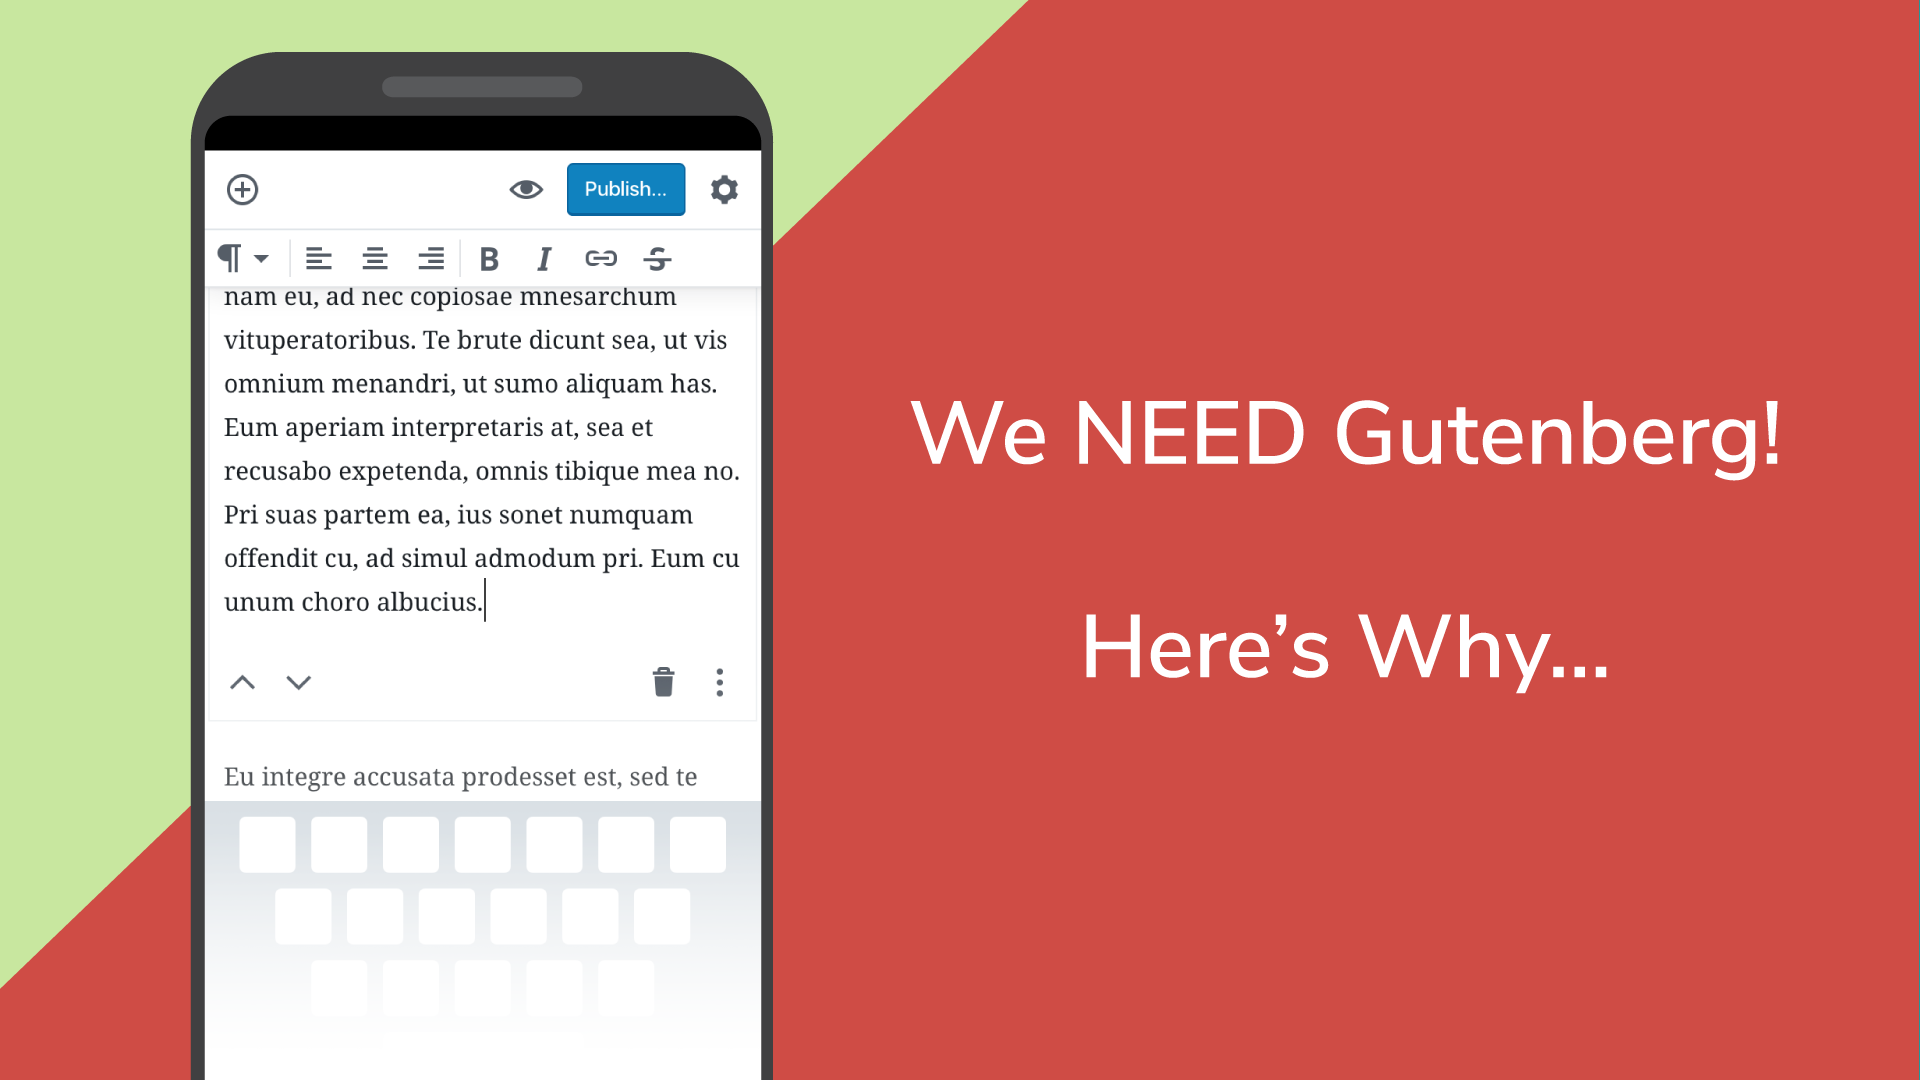 Reason wordpress needs gutenberg